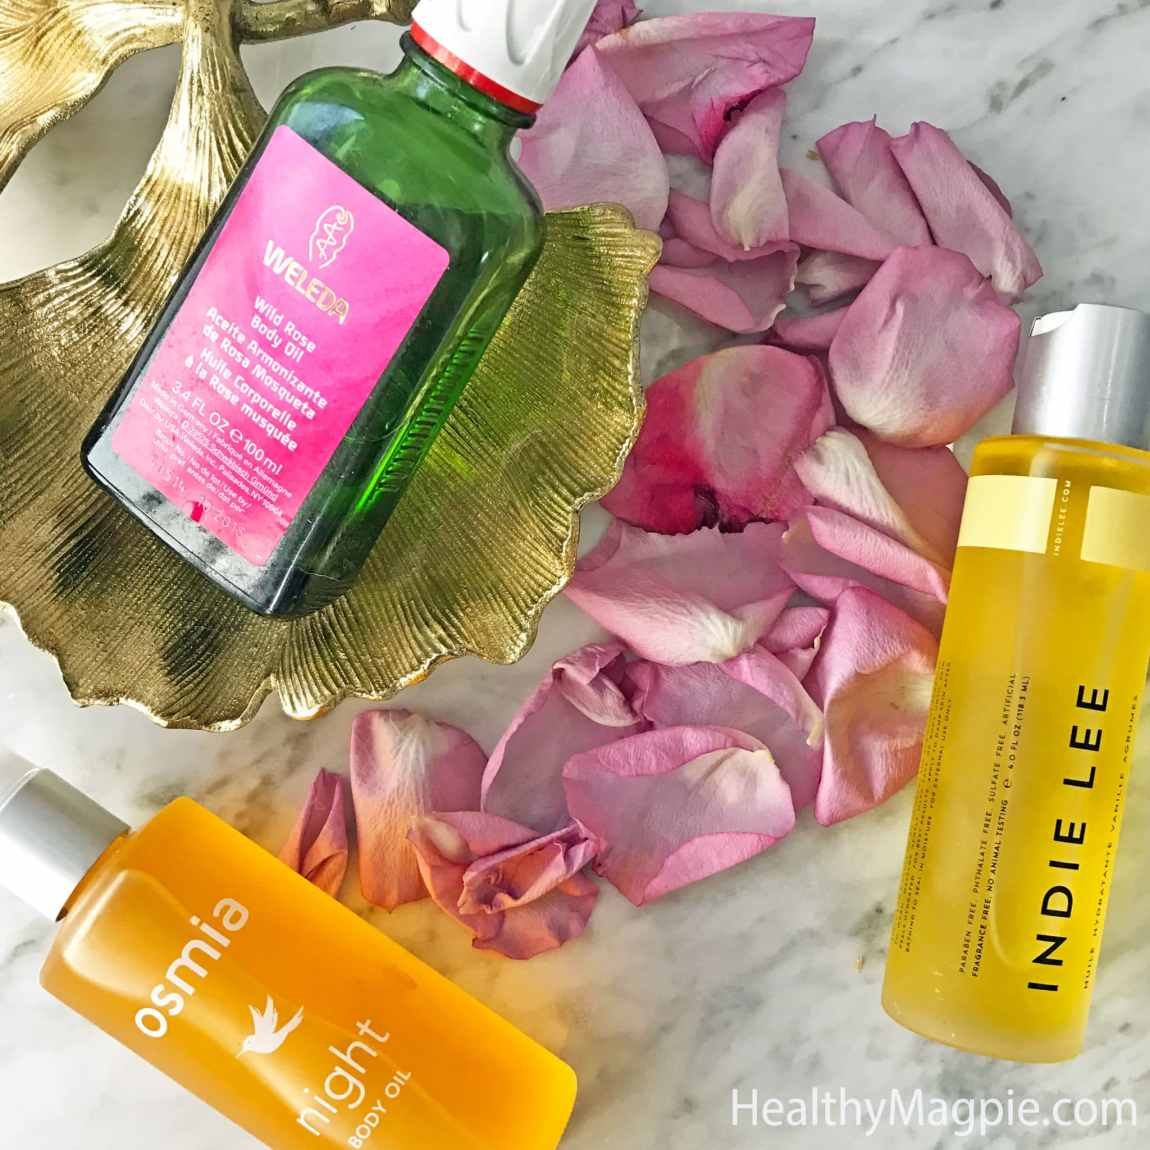 Pictures and reviews of Weleda wild rose body oil, Osmia organic night body oil and Indie Lee Vanilla Citrus moisturizing oil